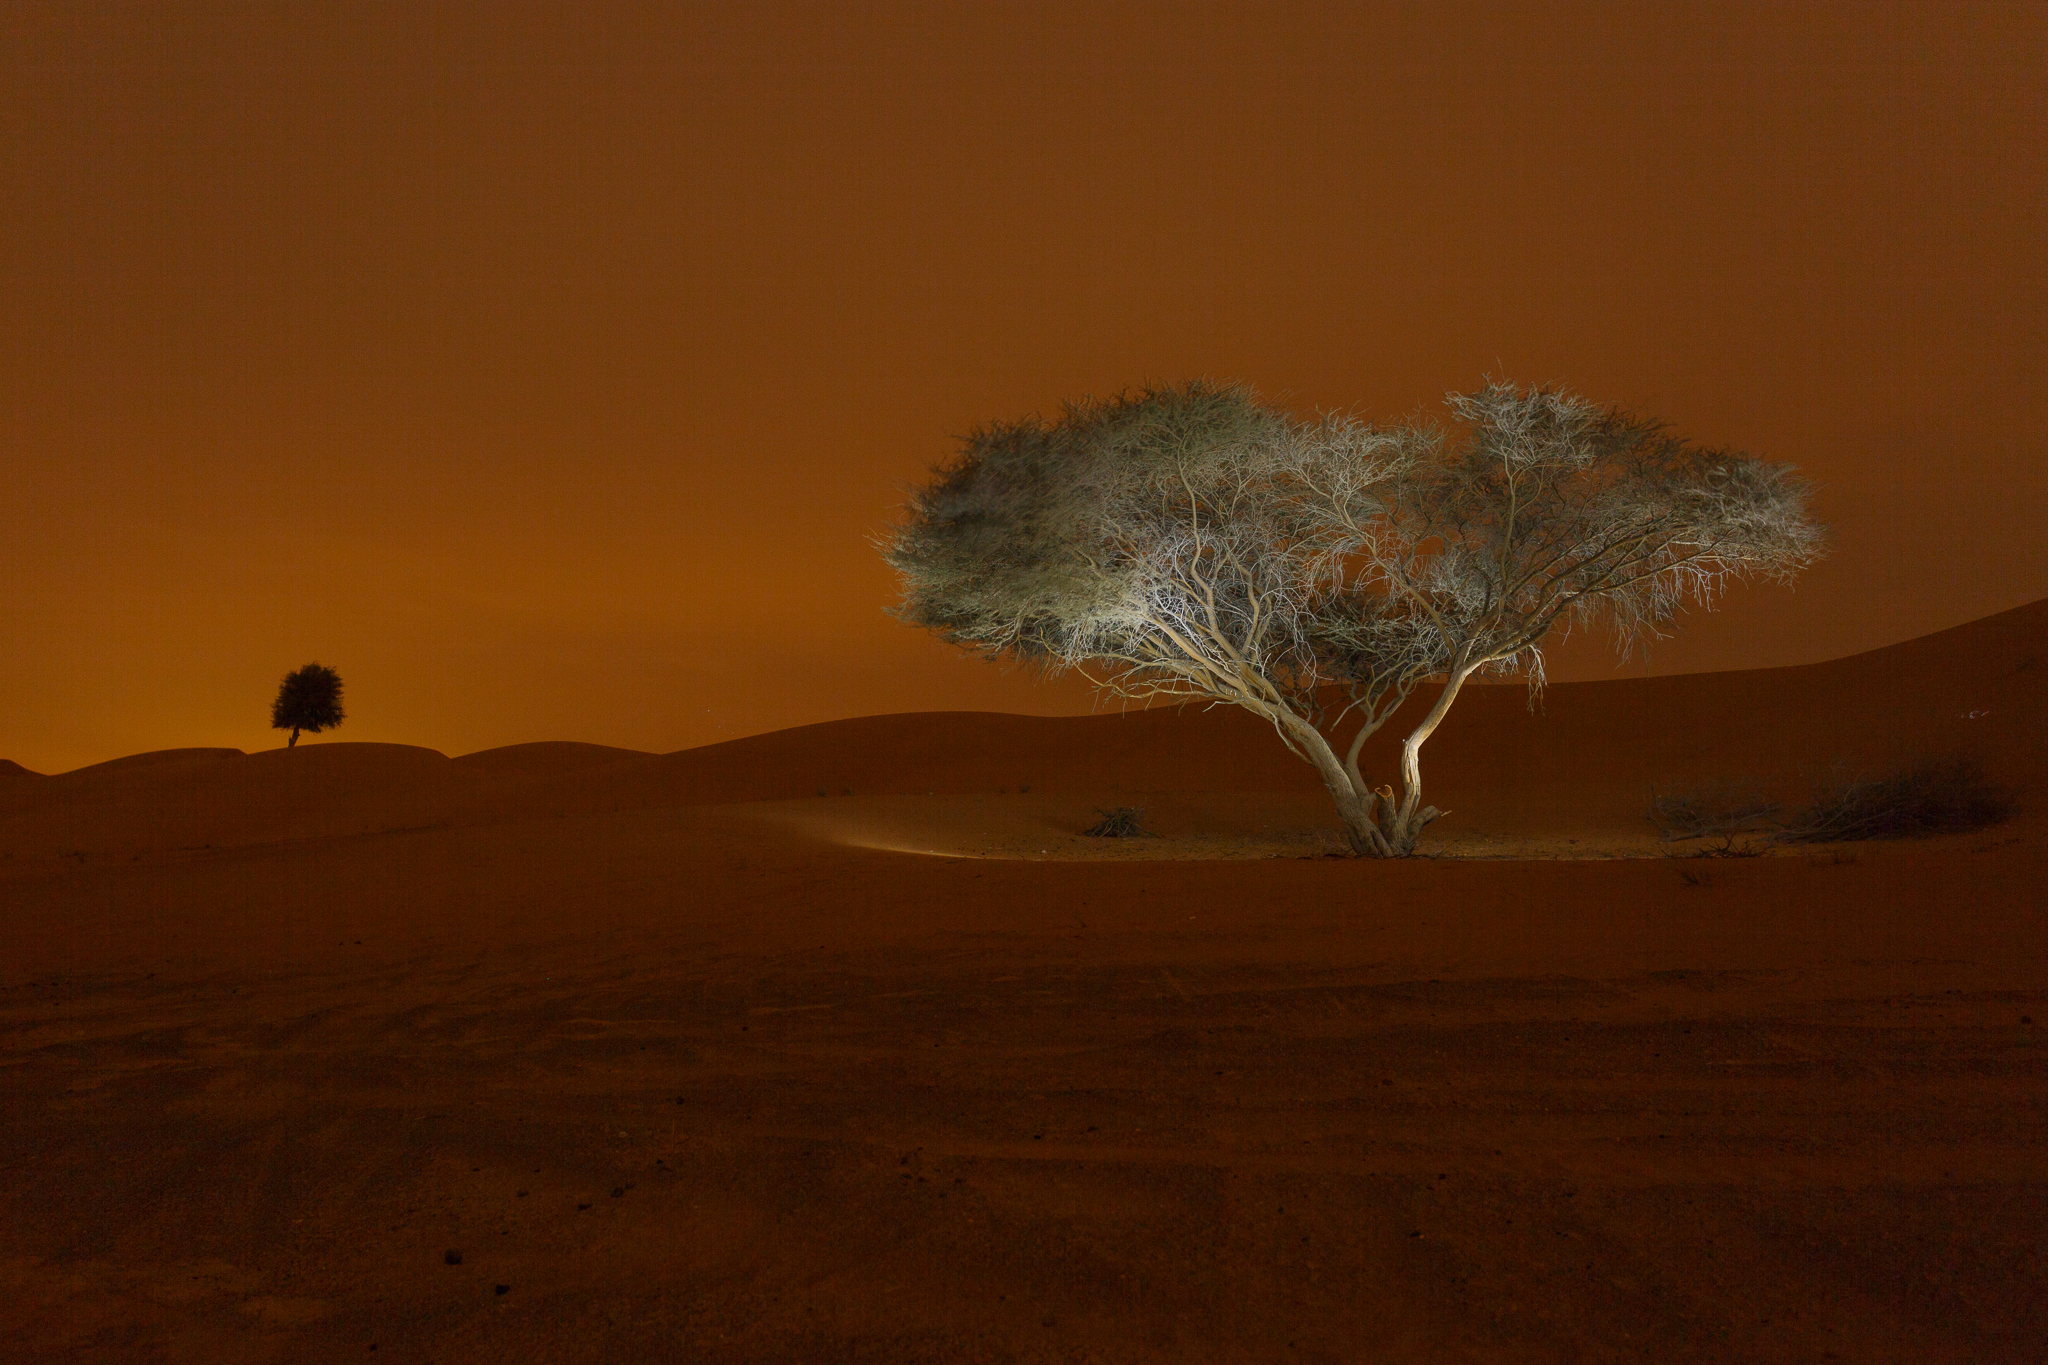 Light painted desert tree against Arabian desert backdrop